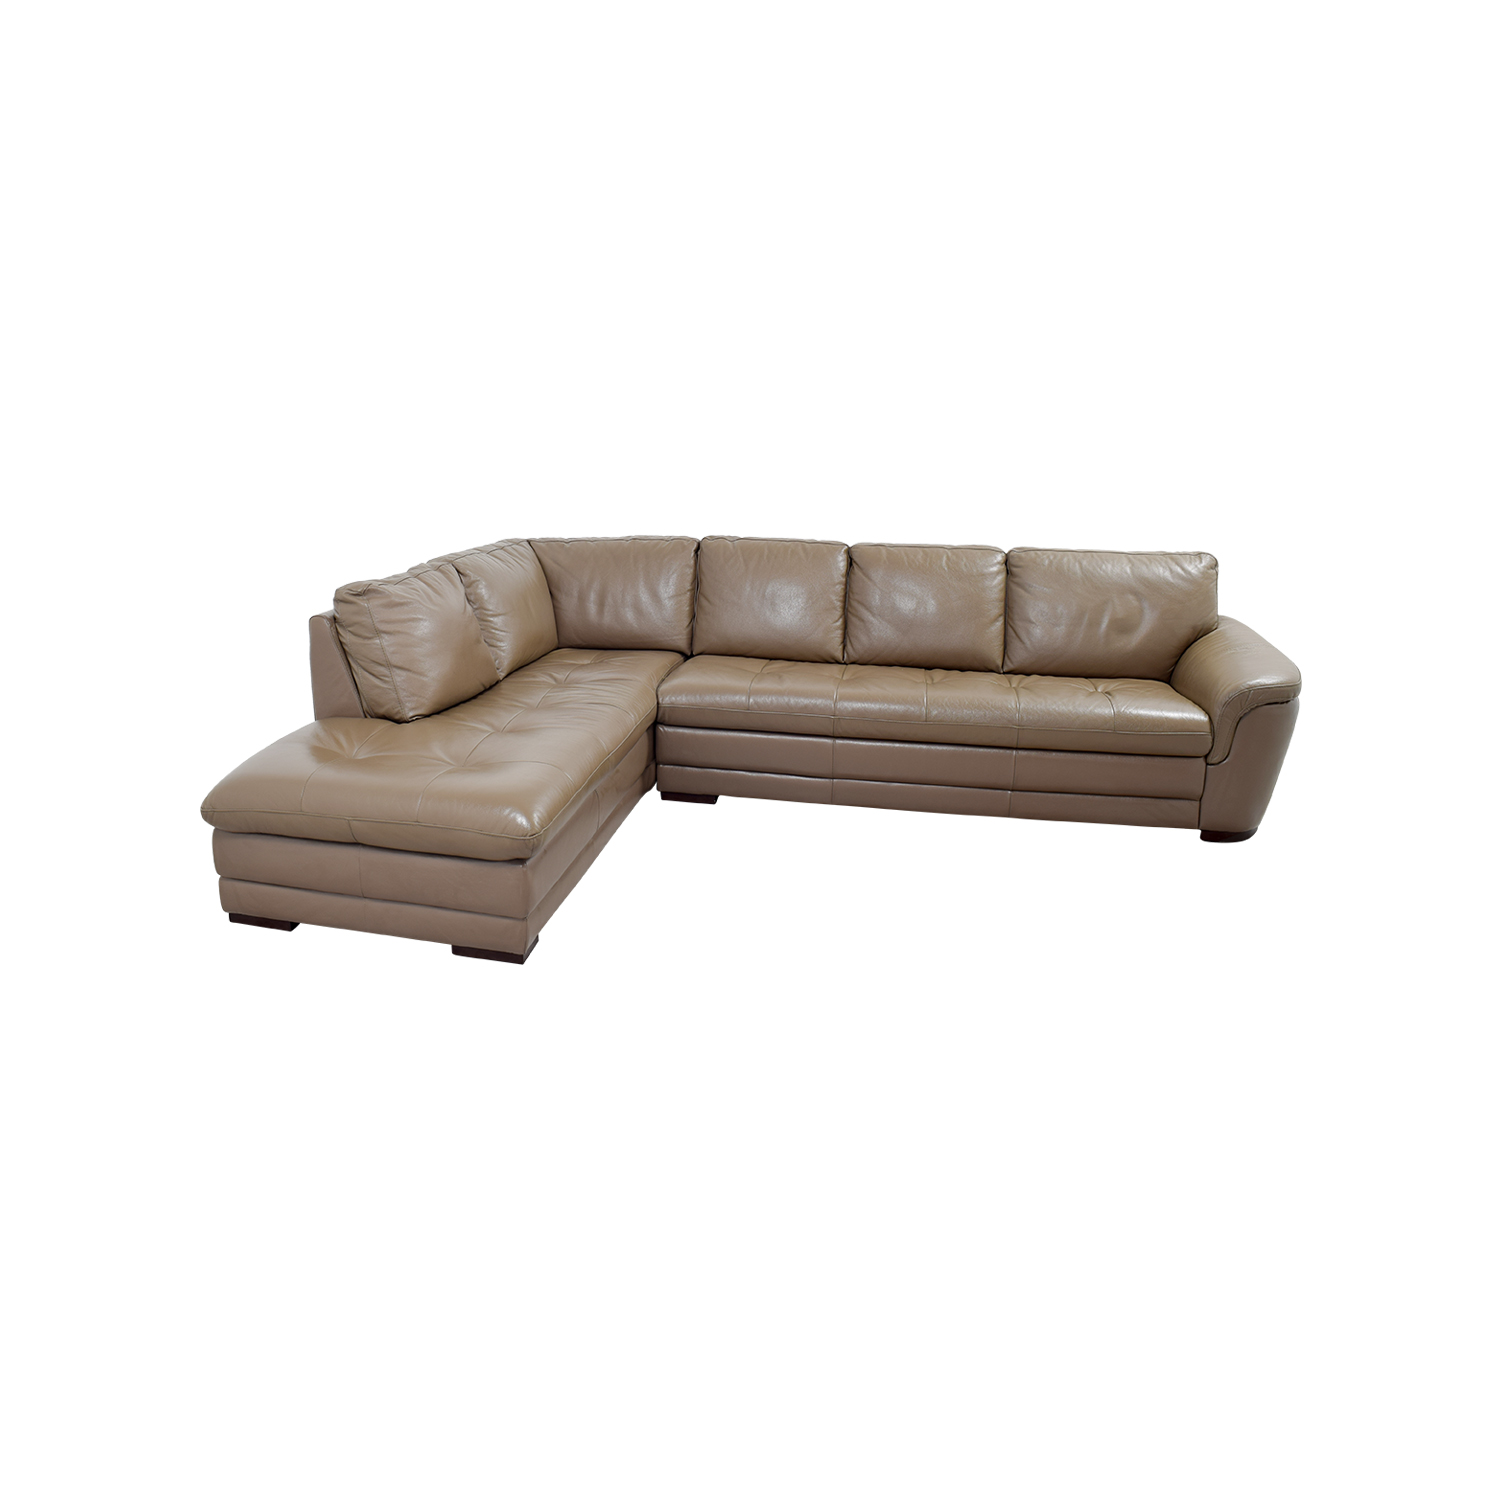 raymour and flanigan sectional sofas childrens argos 72 off garrison